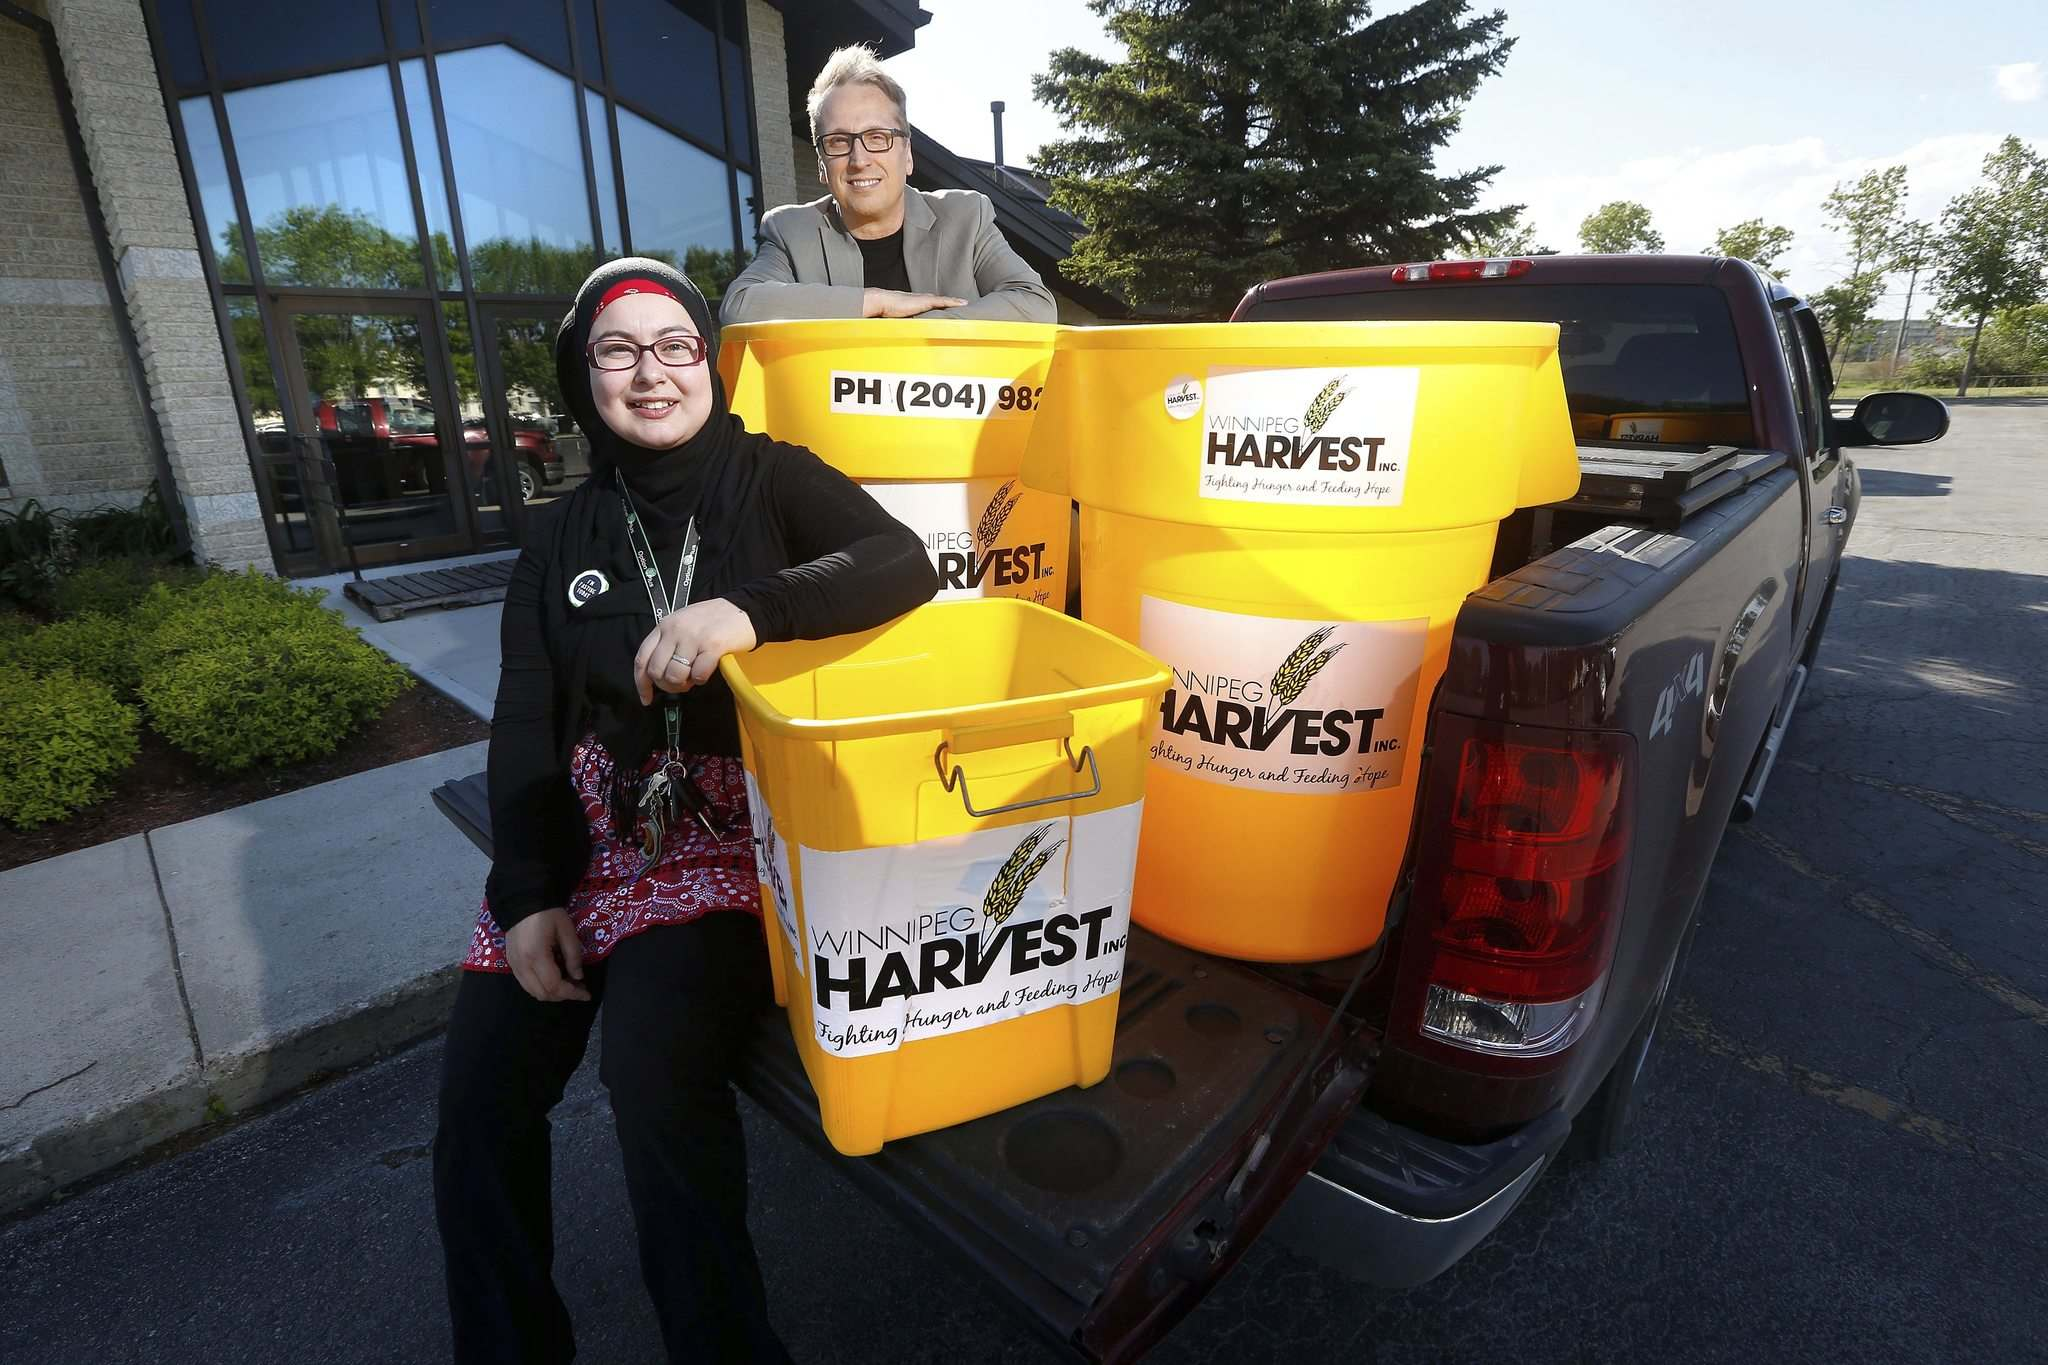 JOHN WOODS / WINNIPEG FREE PRESS</p><p>Lubna Usmani and Rocky Baronins get ready for their interfaith food drive, to be held on Saturday, June 23.</p></p>